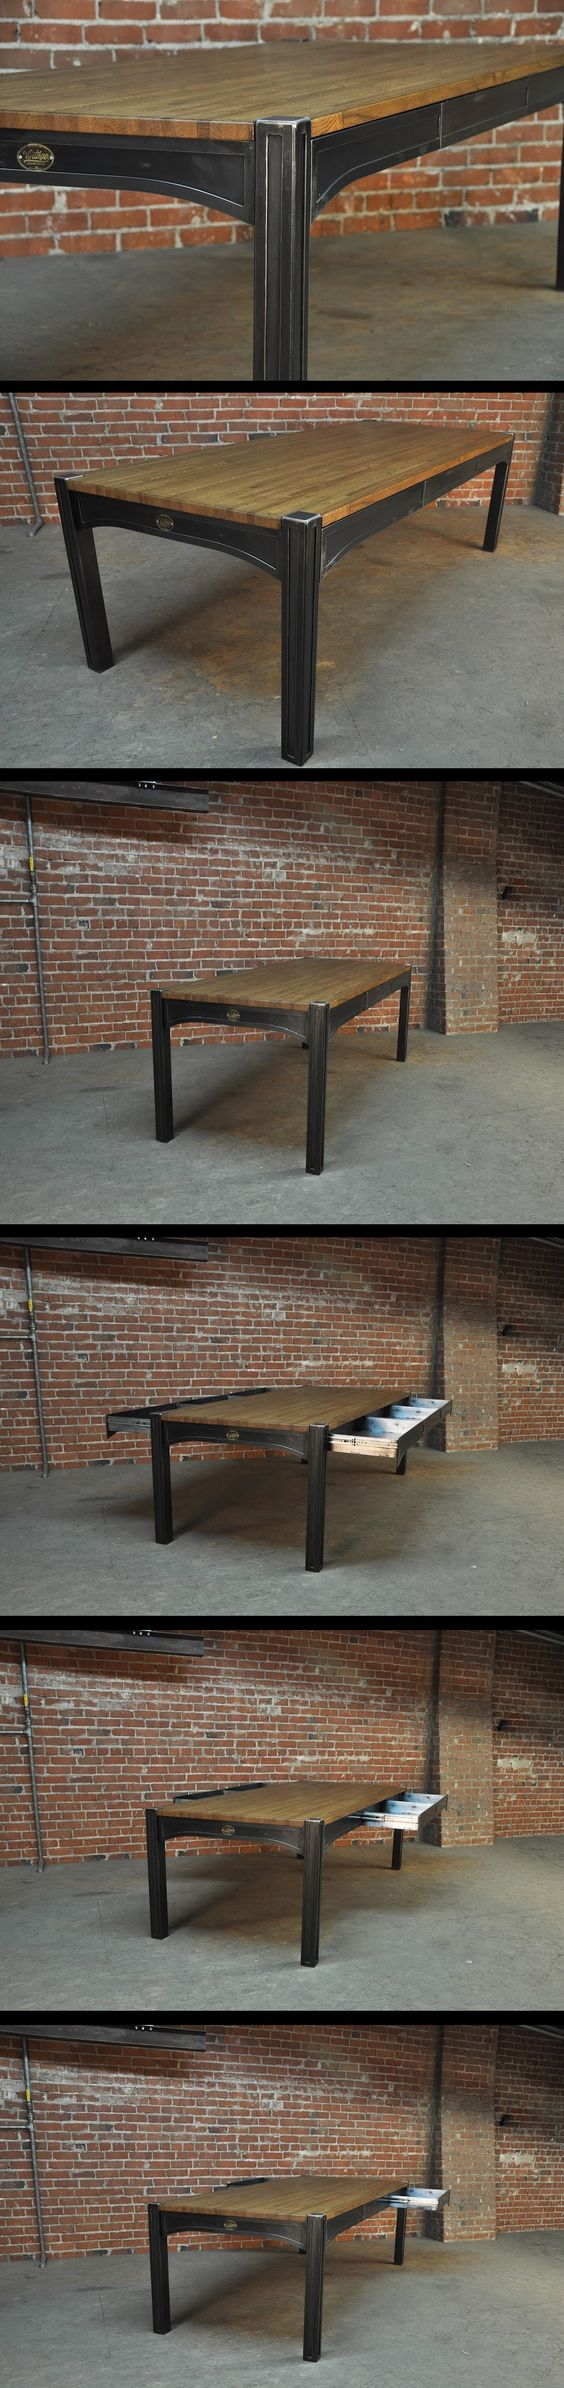 42 dining table by vintage industrial furniture in phoenix for Furniture 85050